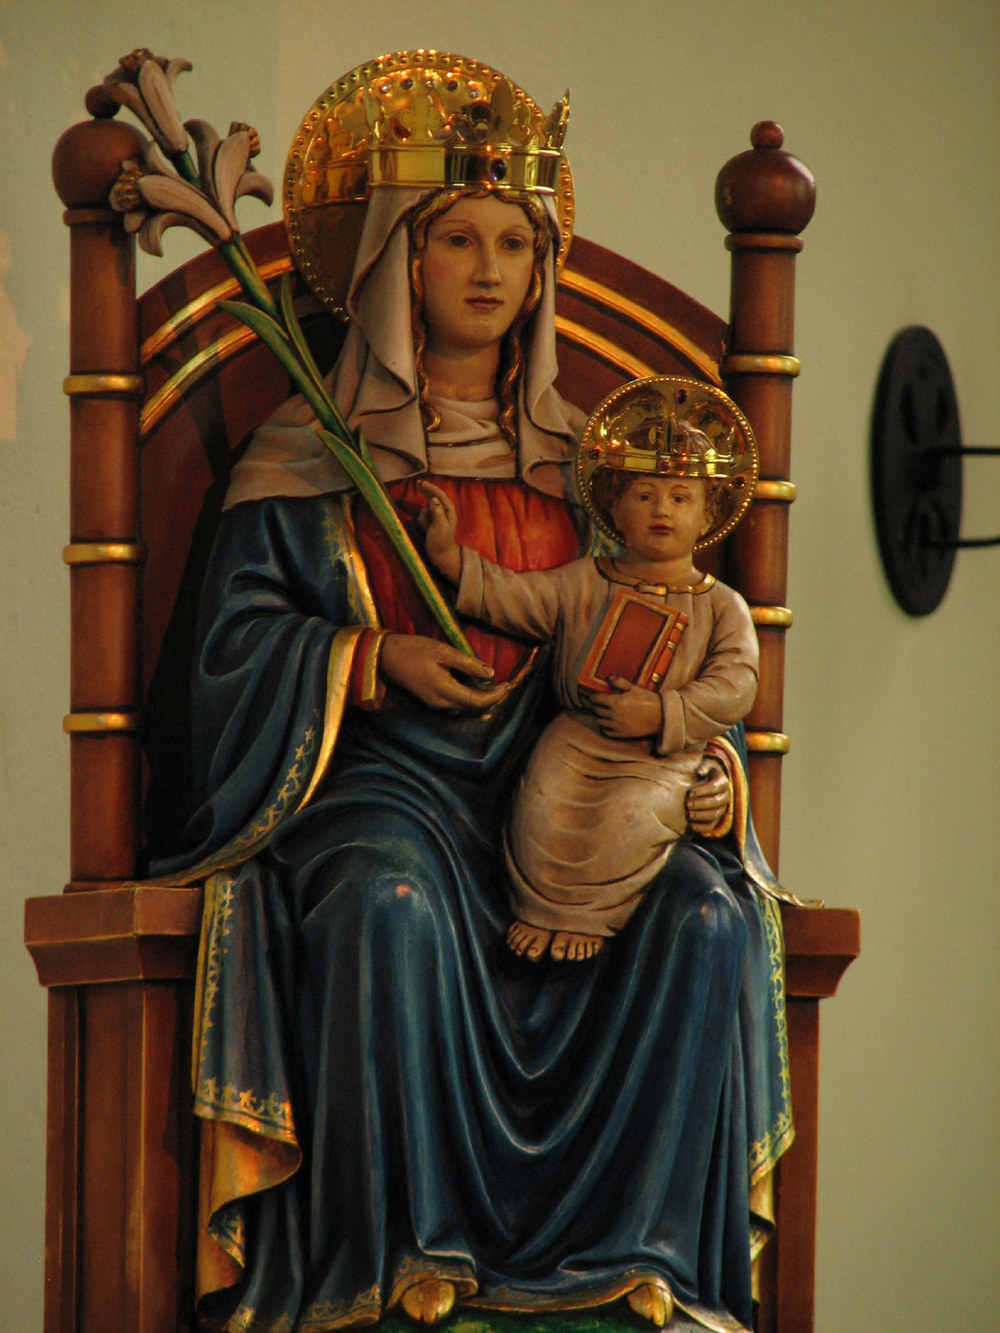 Photo: Our Lady, as she is venerated at Walsingham, is depicted as a simple woman, a mother. She is seated on the throne of Wisdom, in the midst of the Church which is represented by the two pillars symbolic of the Gate of Heaven, with seven rings to signify the seven sacraments and the seven gifts of the Holy Spirit.